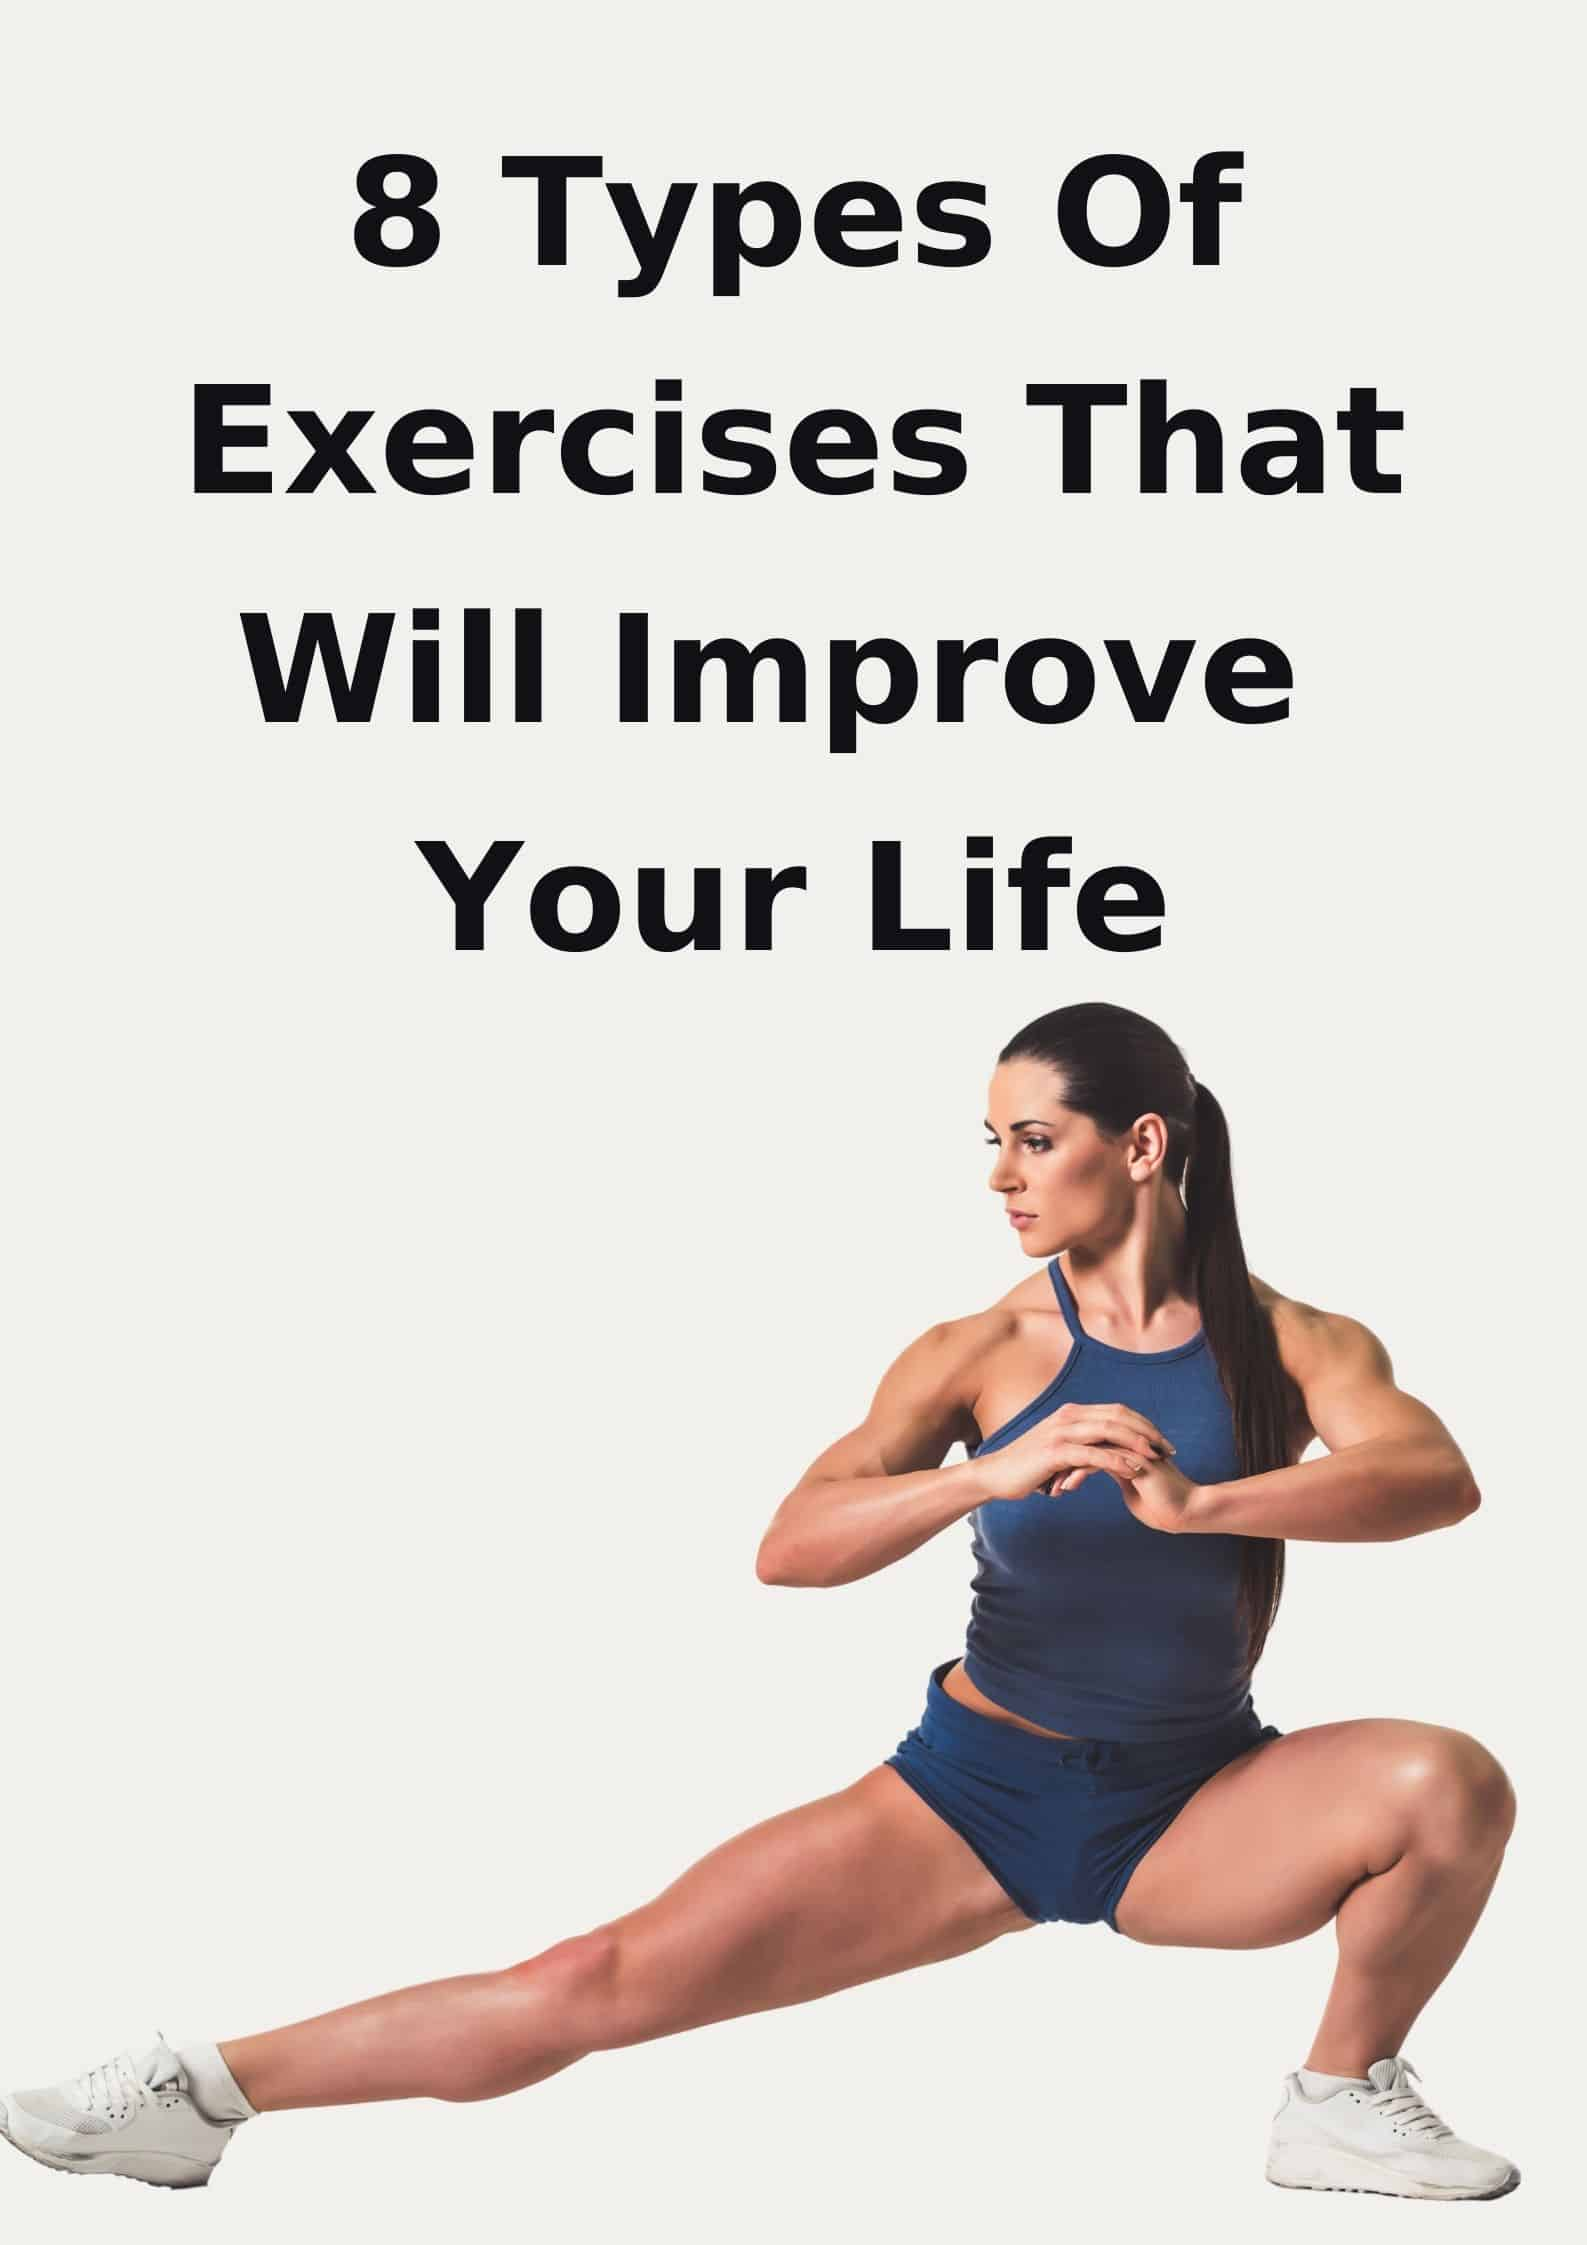 Exercises That Will Improve Your Life